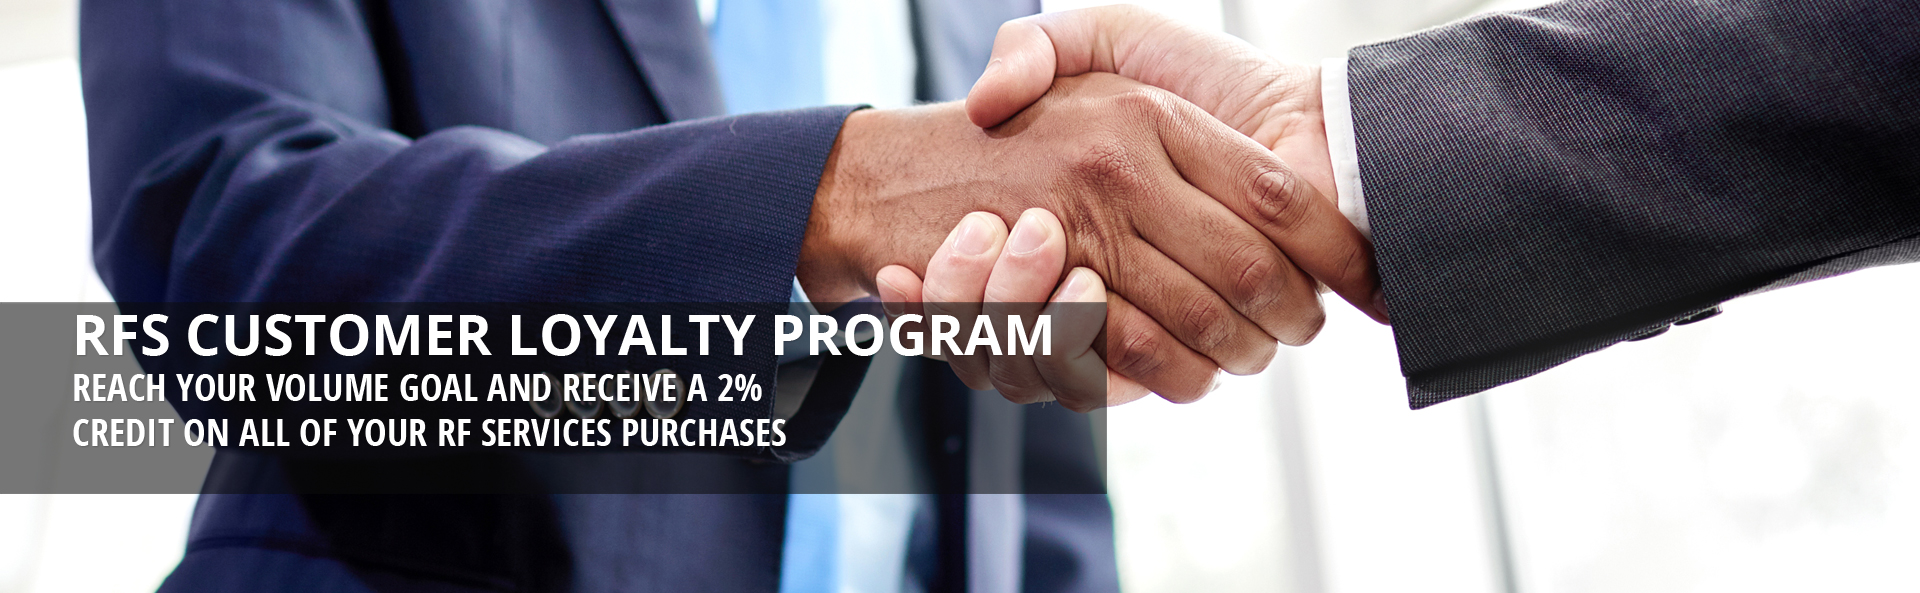 RFS Customer Loyalty Program